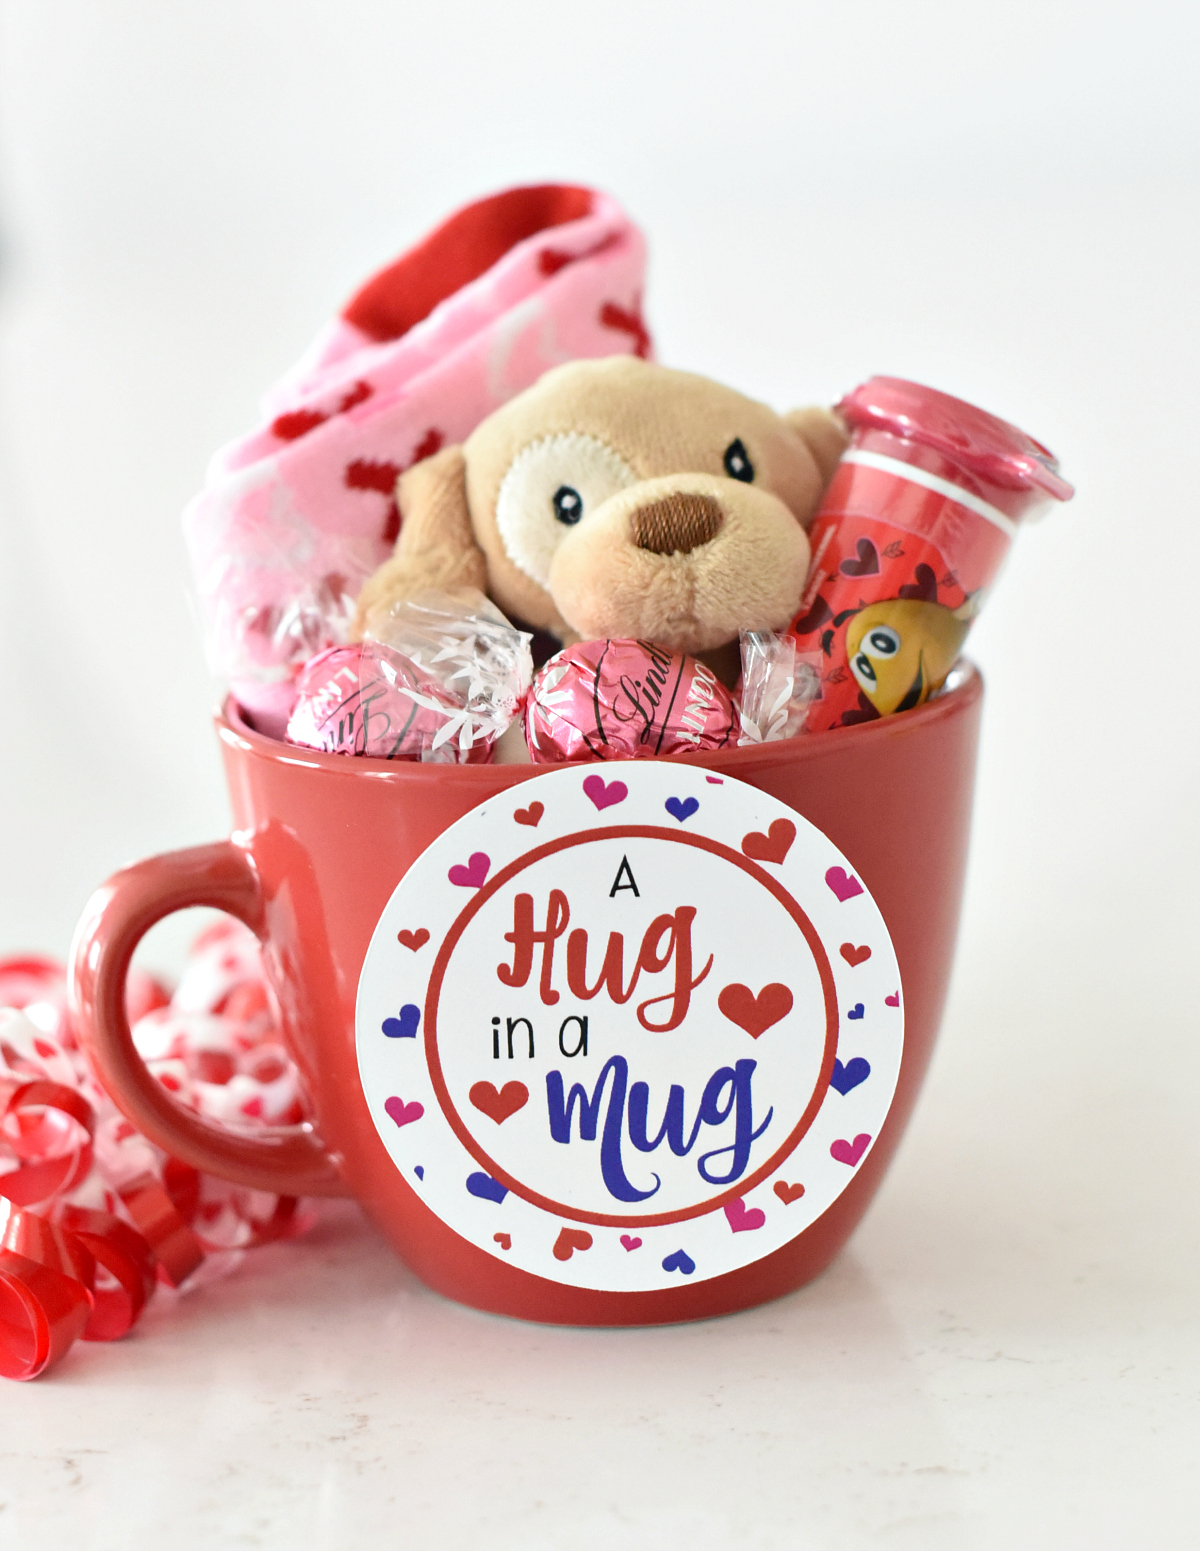 Valentines Gift Idea for kids-This cute Hug in a Mug gift is perfect to give your kids for Valentine's Day. Fill a cute mug with toys or candy and add this cute tag for a fun Valentine's gift idea for your kids. #valentines #valentinesday #valentinesdaygifts #valentinesdaygiftideas